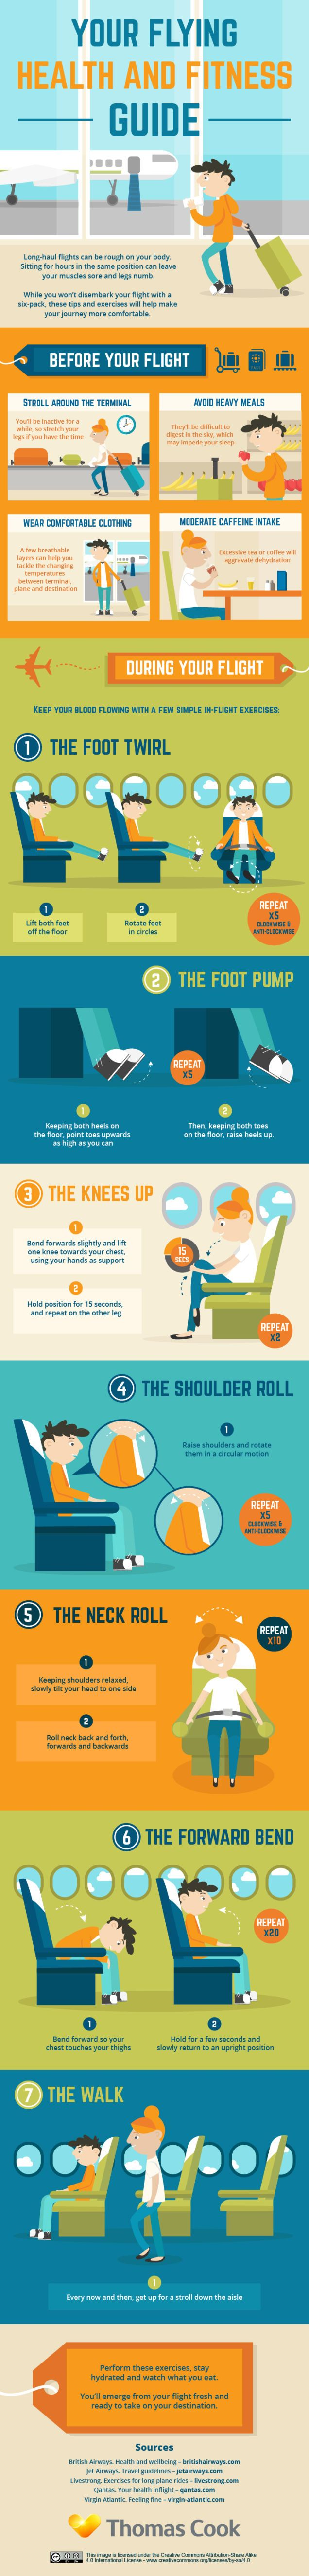 keep your body from getting stiff on long flights with these simple plane exercises - no more numb legs!